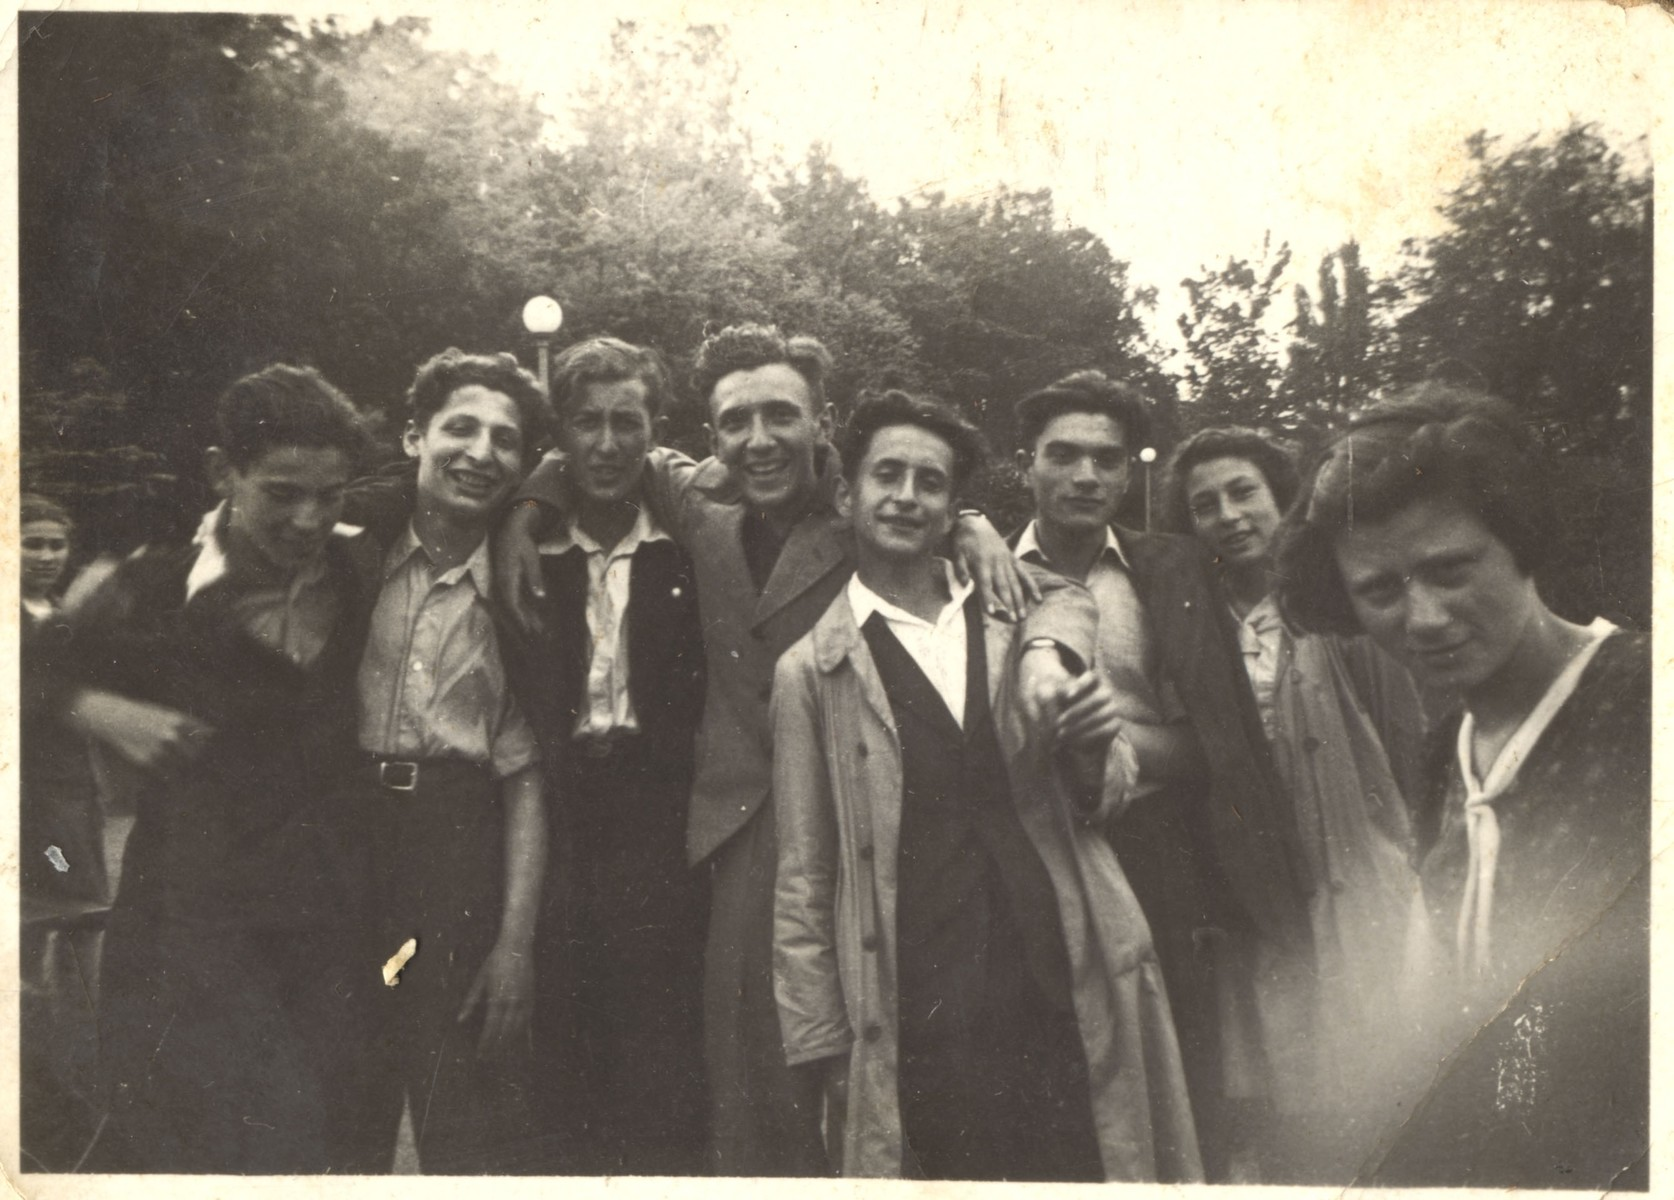 Group portrait of Jewish teenagers in Lodz.    Henryk Bergman, the donor, is standing third from left.